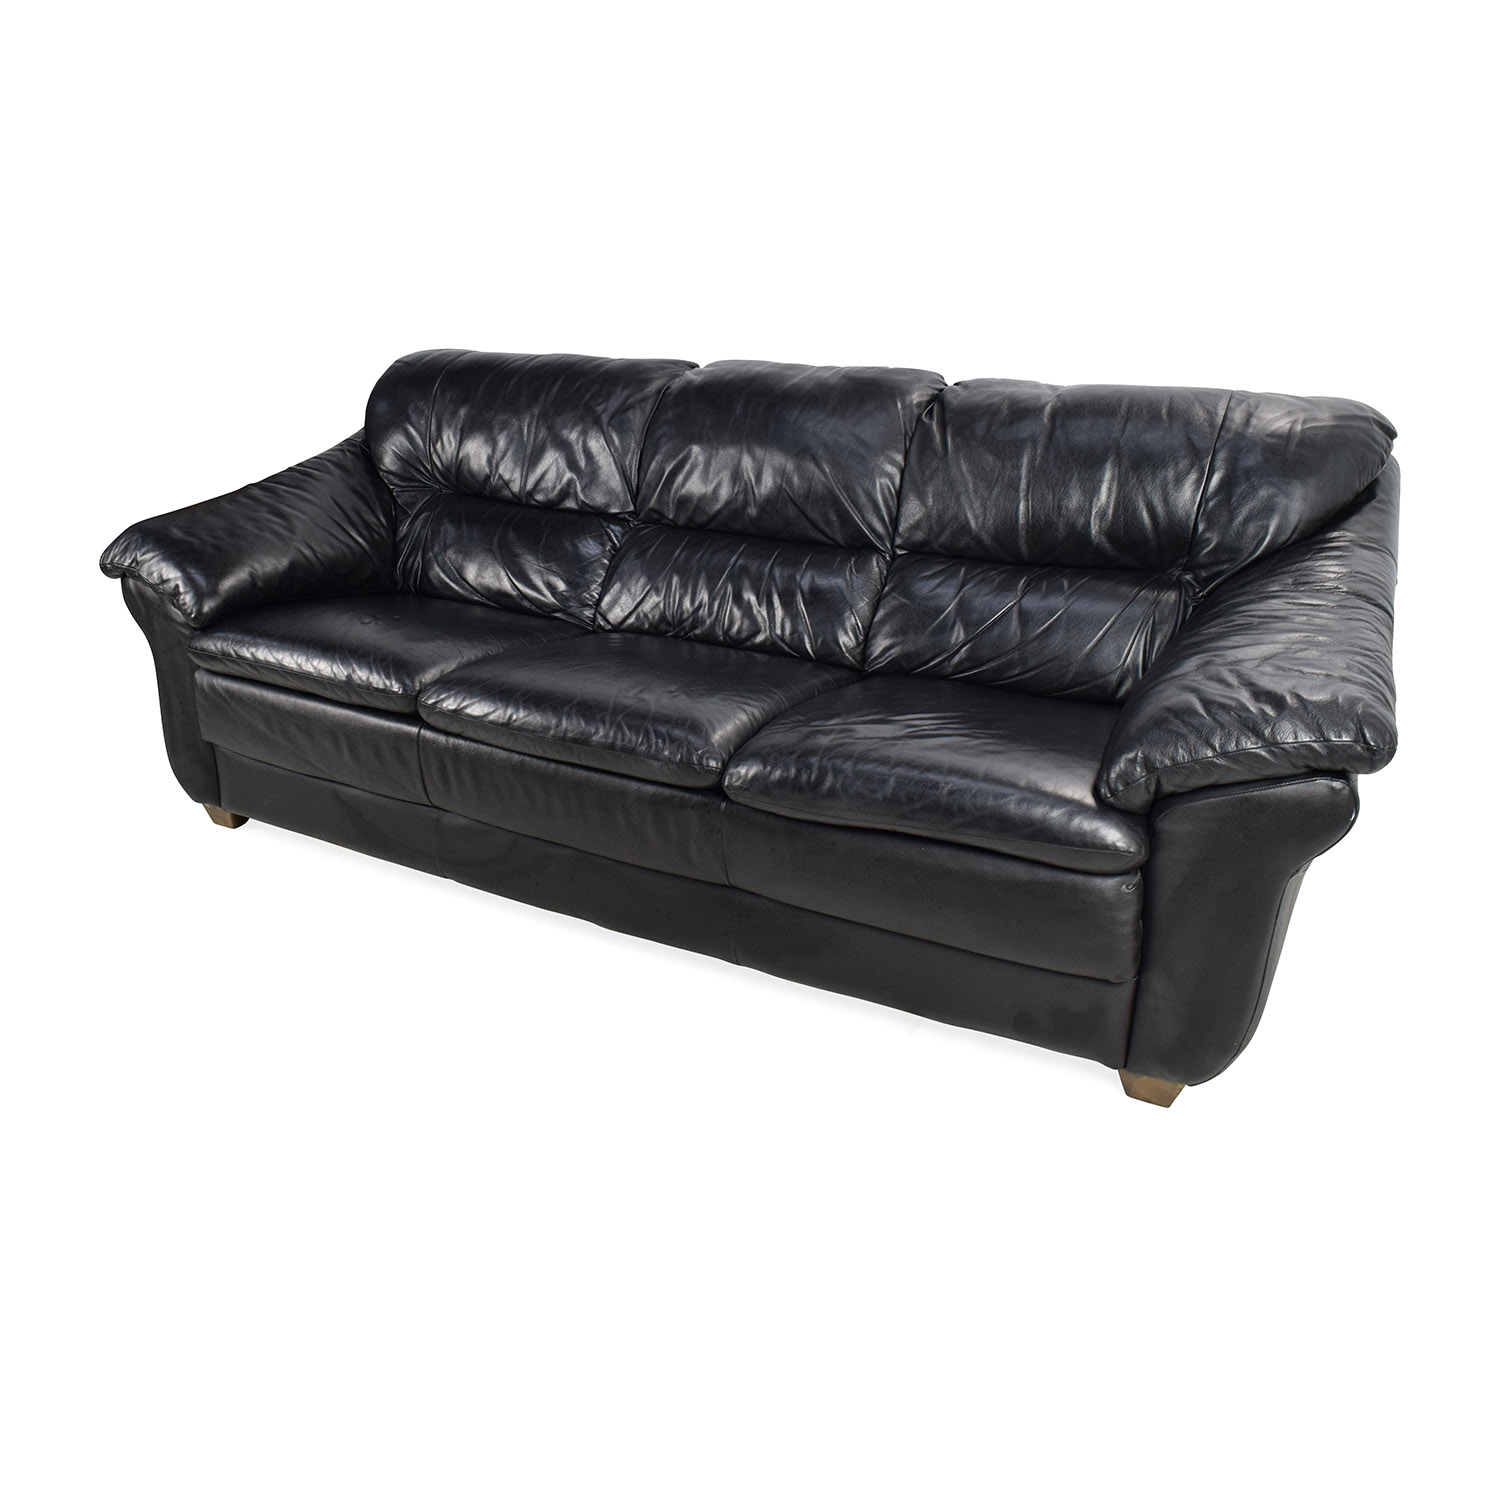 79% OFF - Natuzzi Natuzzi Italian Black Leather Sofa / Sofas